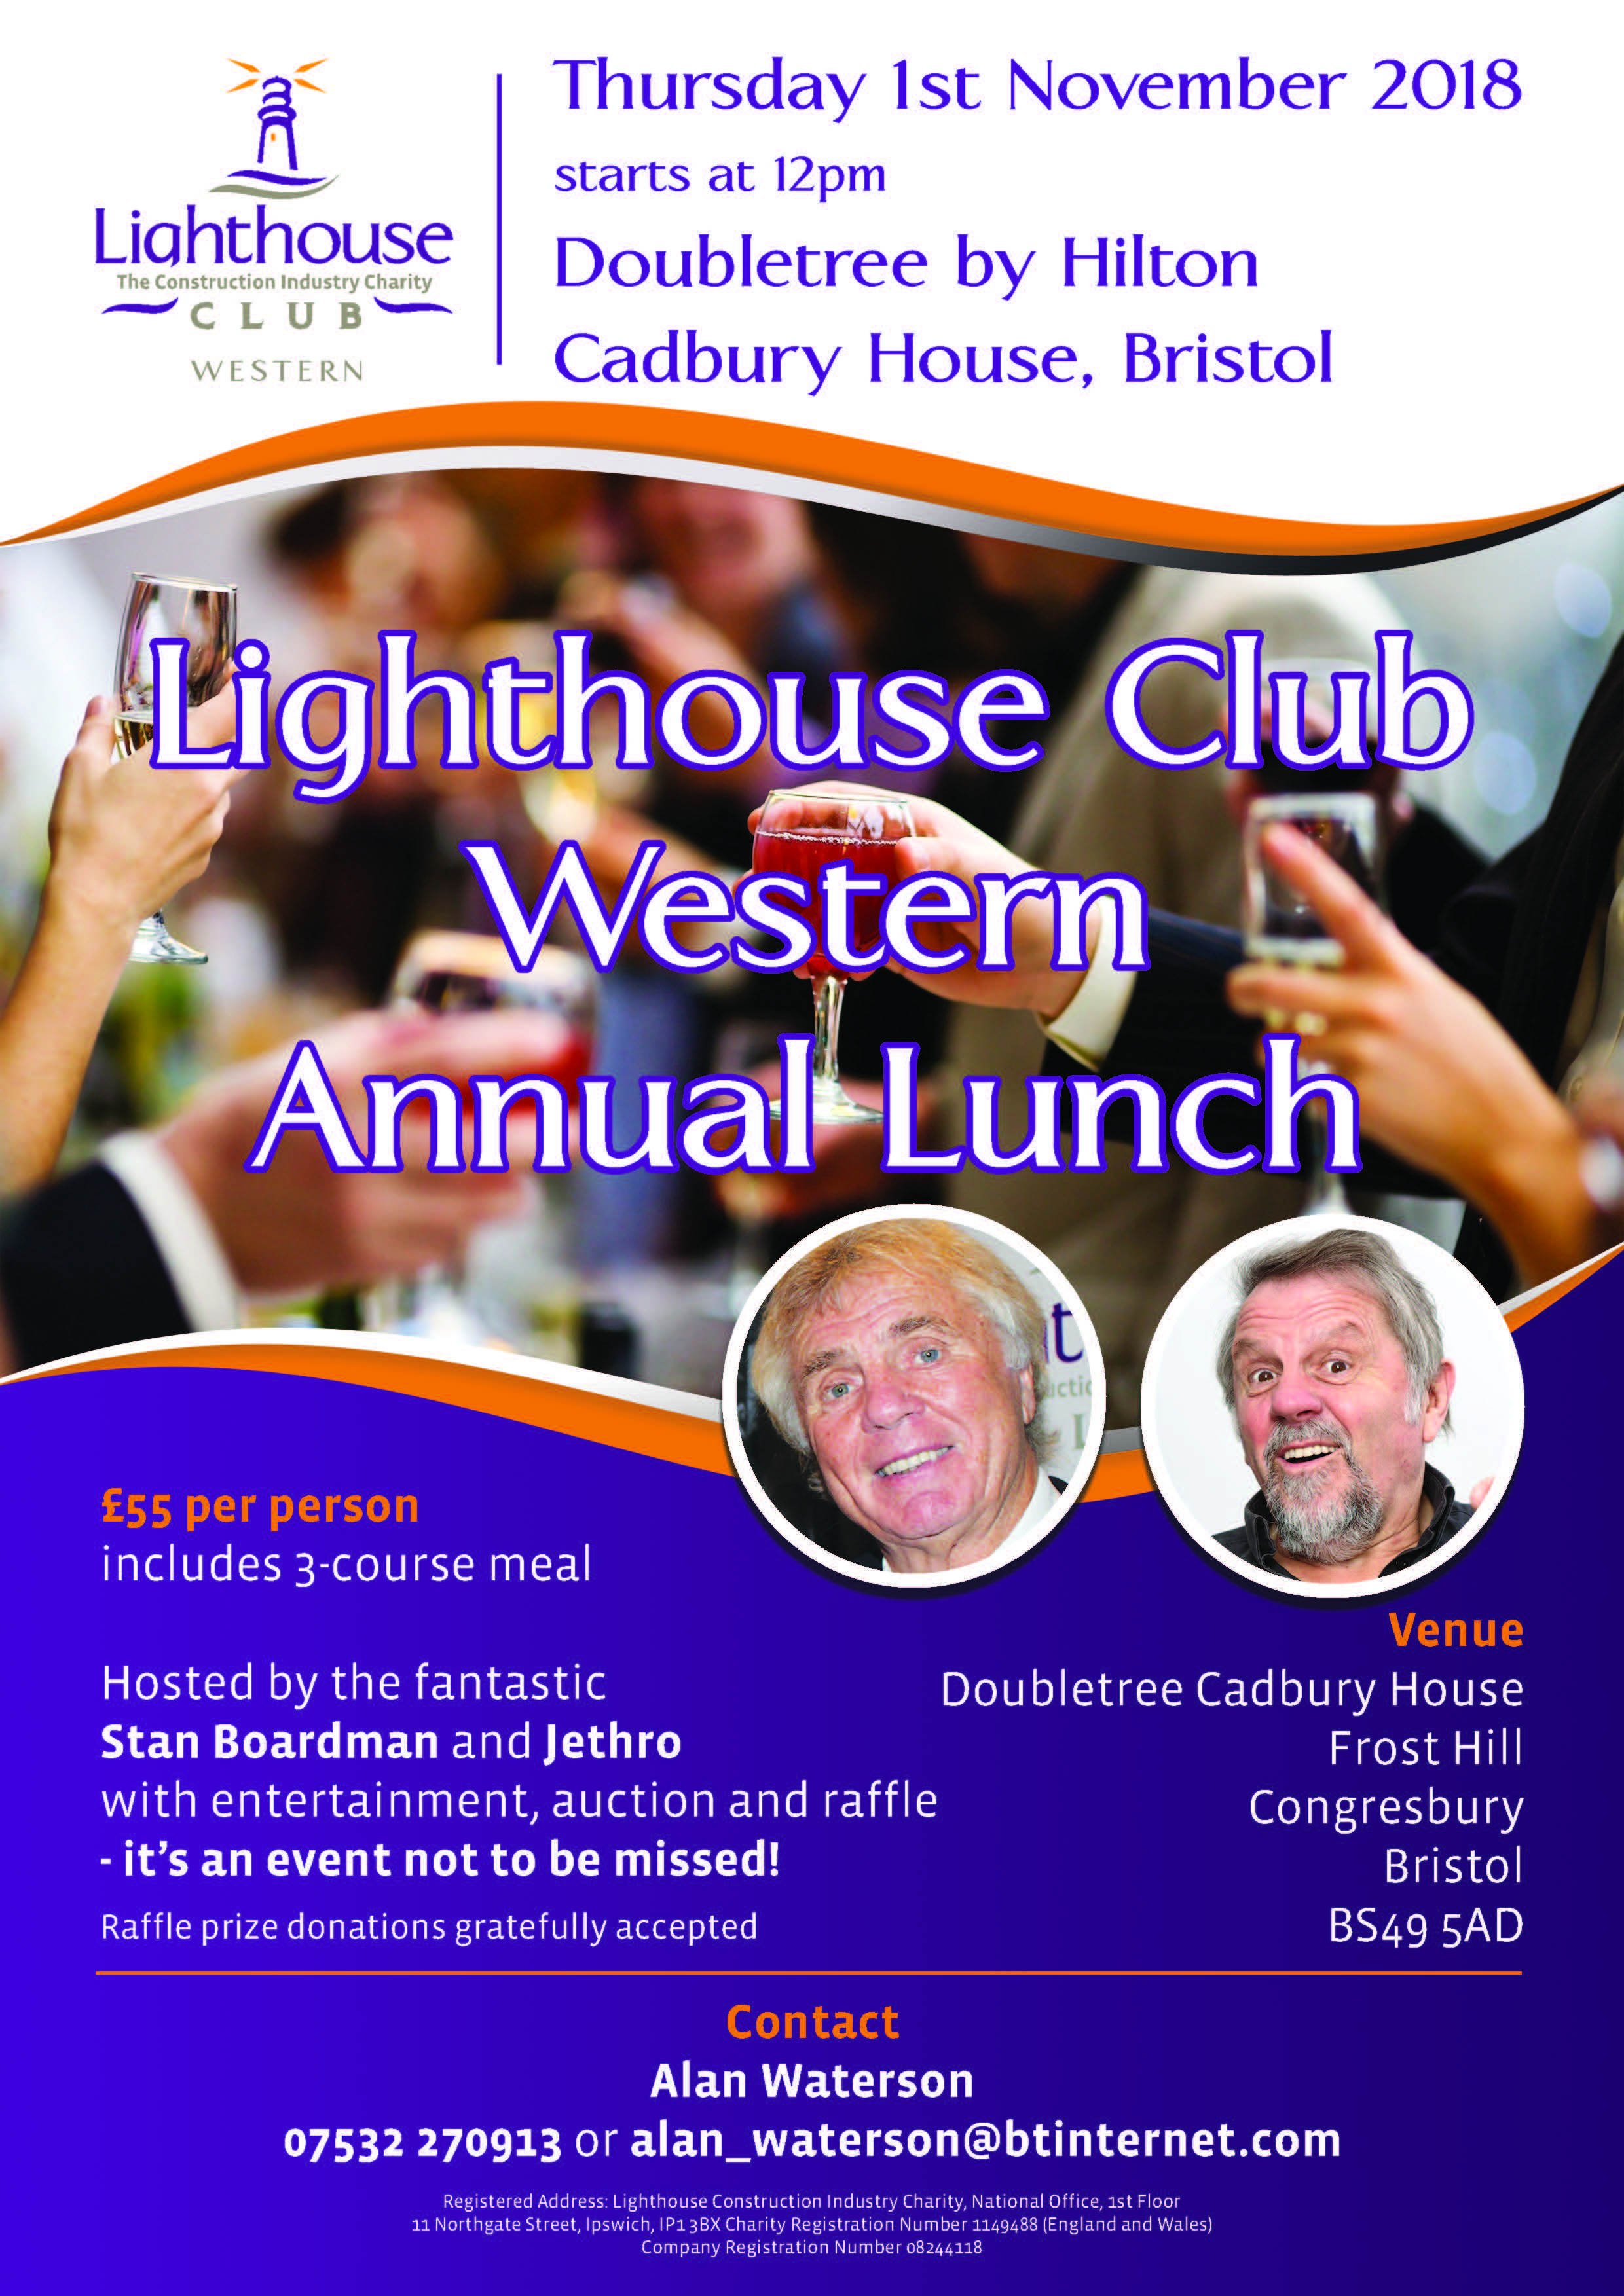 western branch annual lunch flyer 2018 lighthouse club